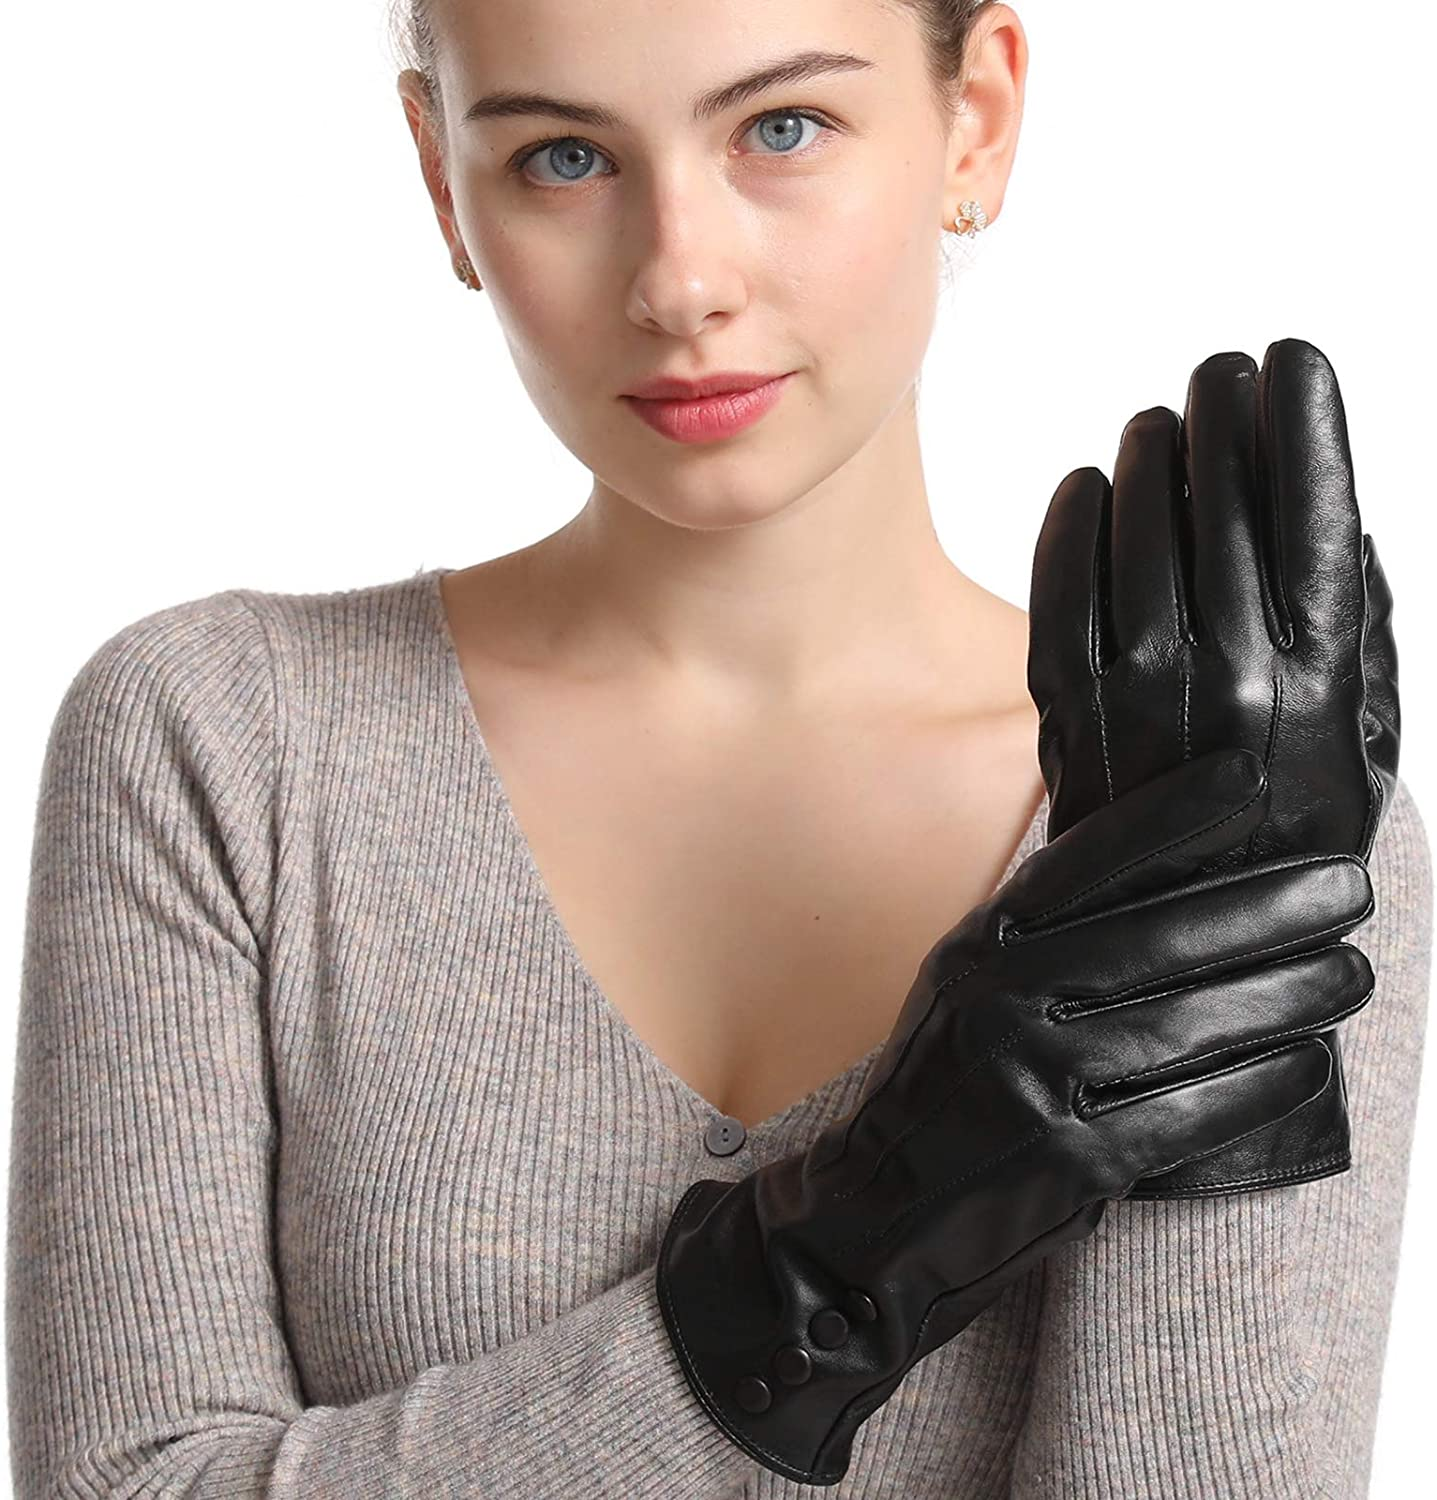 Black Leather Spring Ranking TOP18 new work one after another Gloves Women Winter Warm TouchScree Lined Cashmere